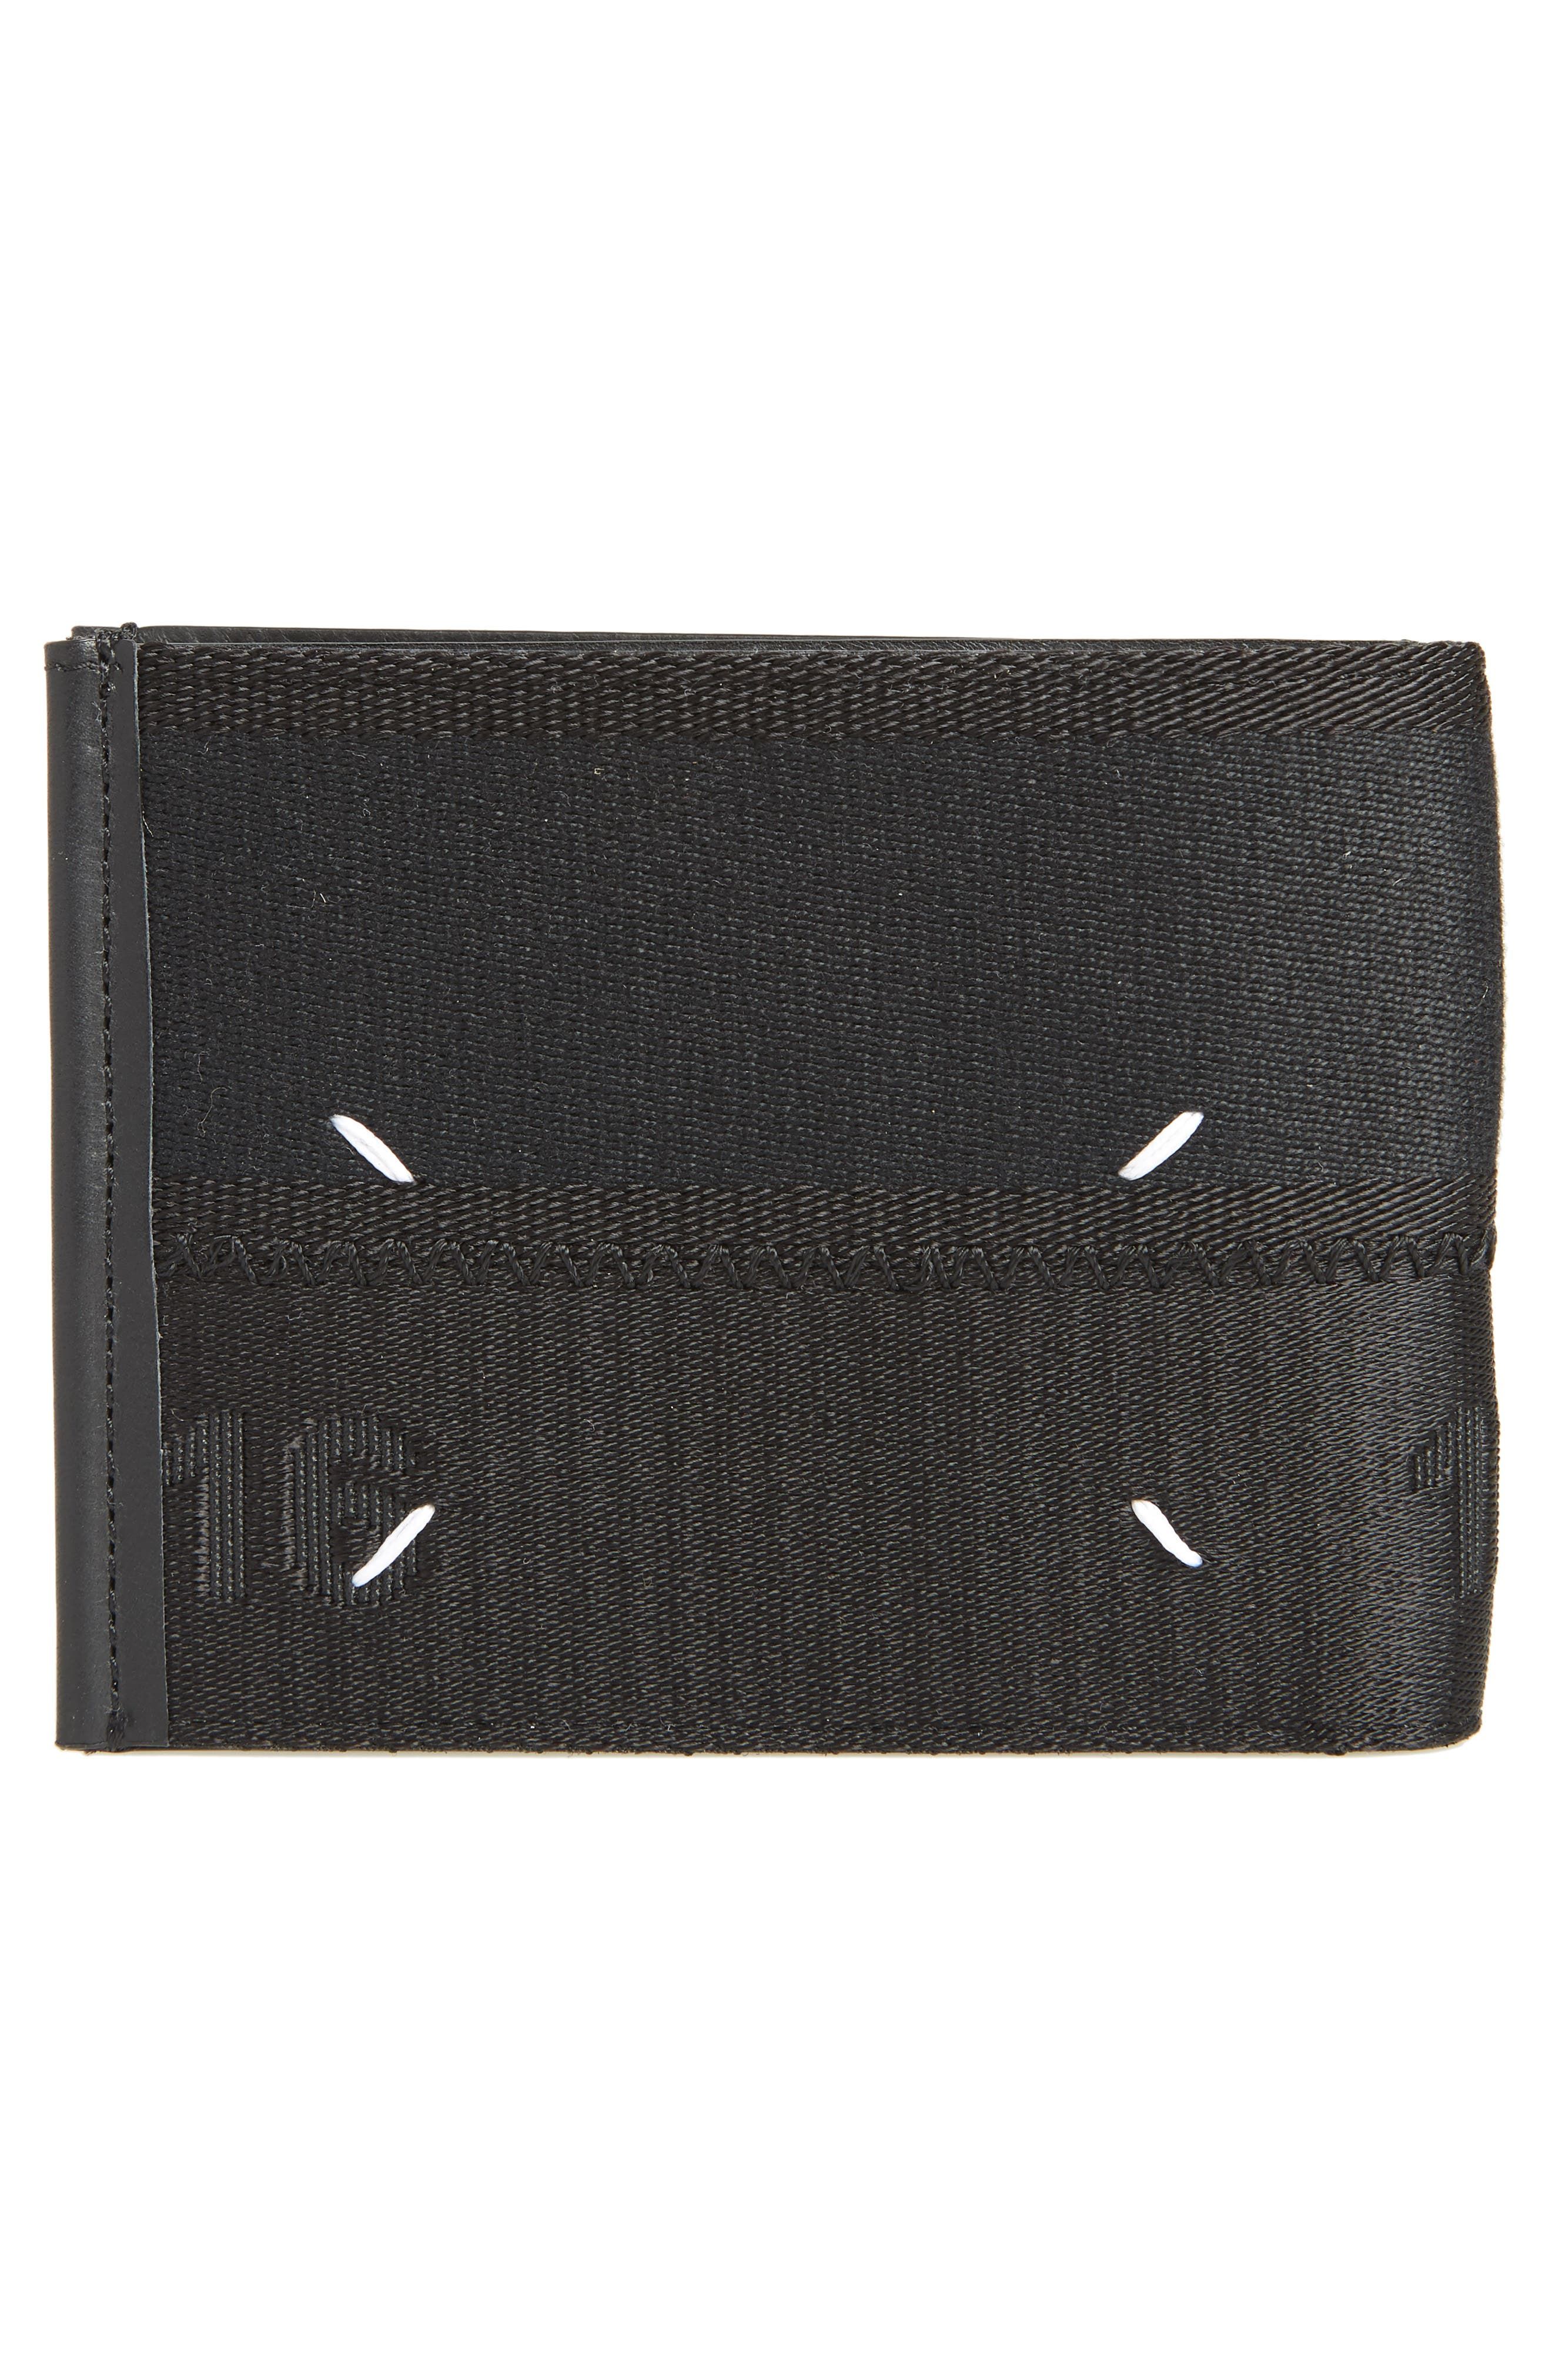 Leather Card Case,                             Alternate thumbnail 3, color,                             Black